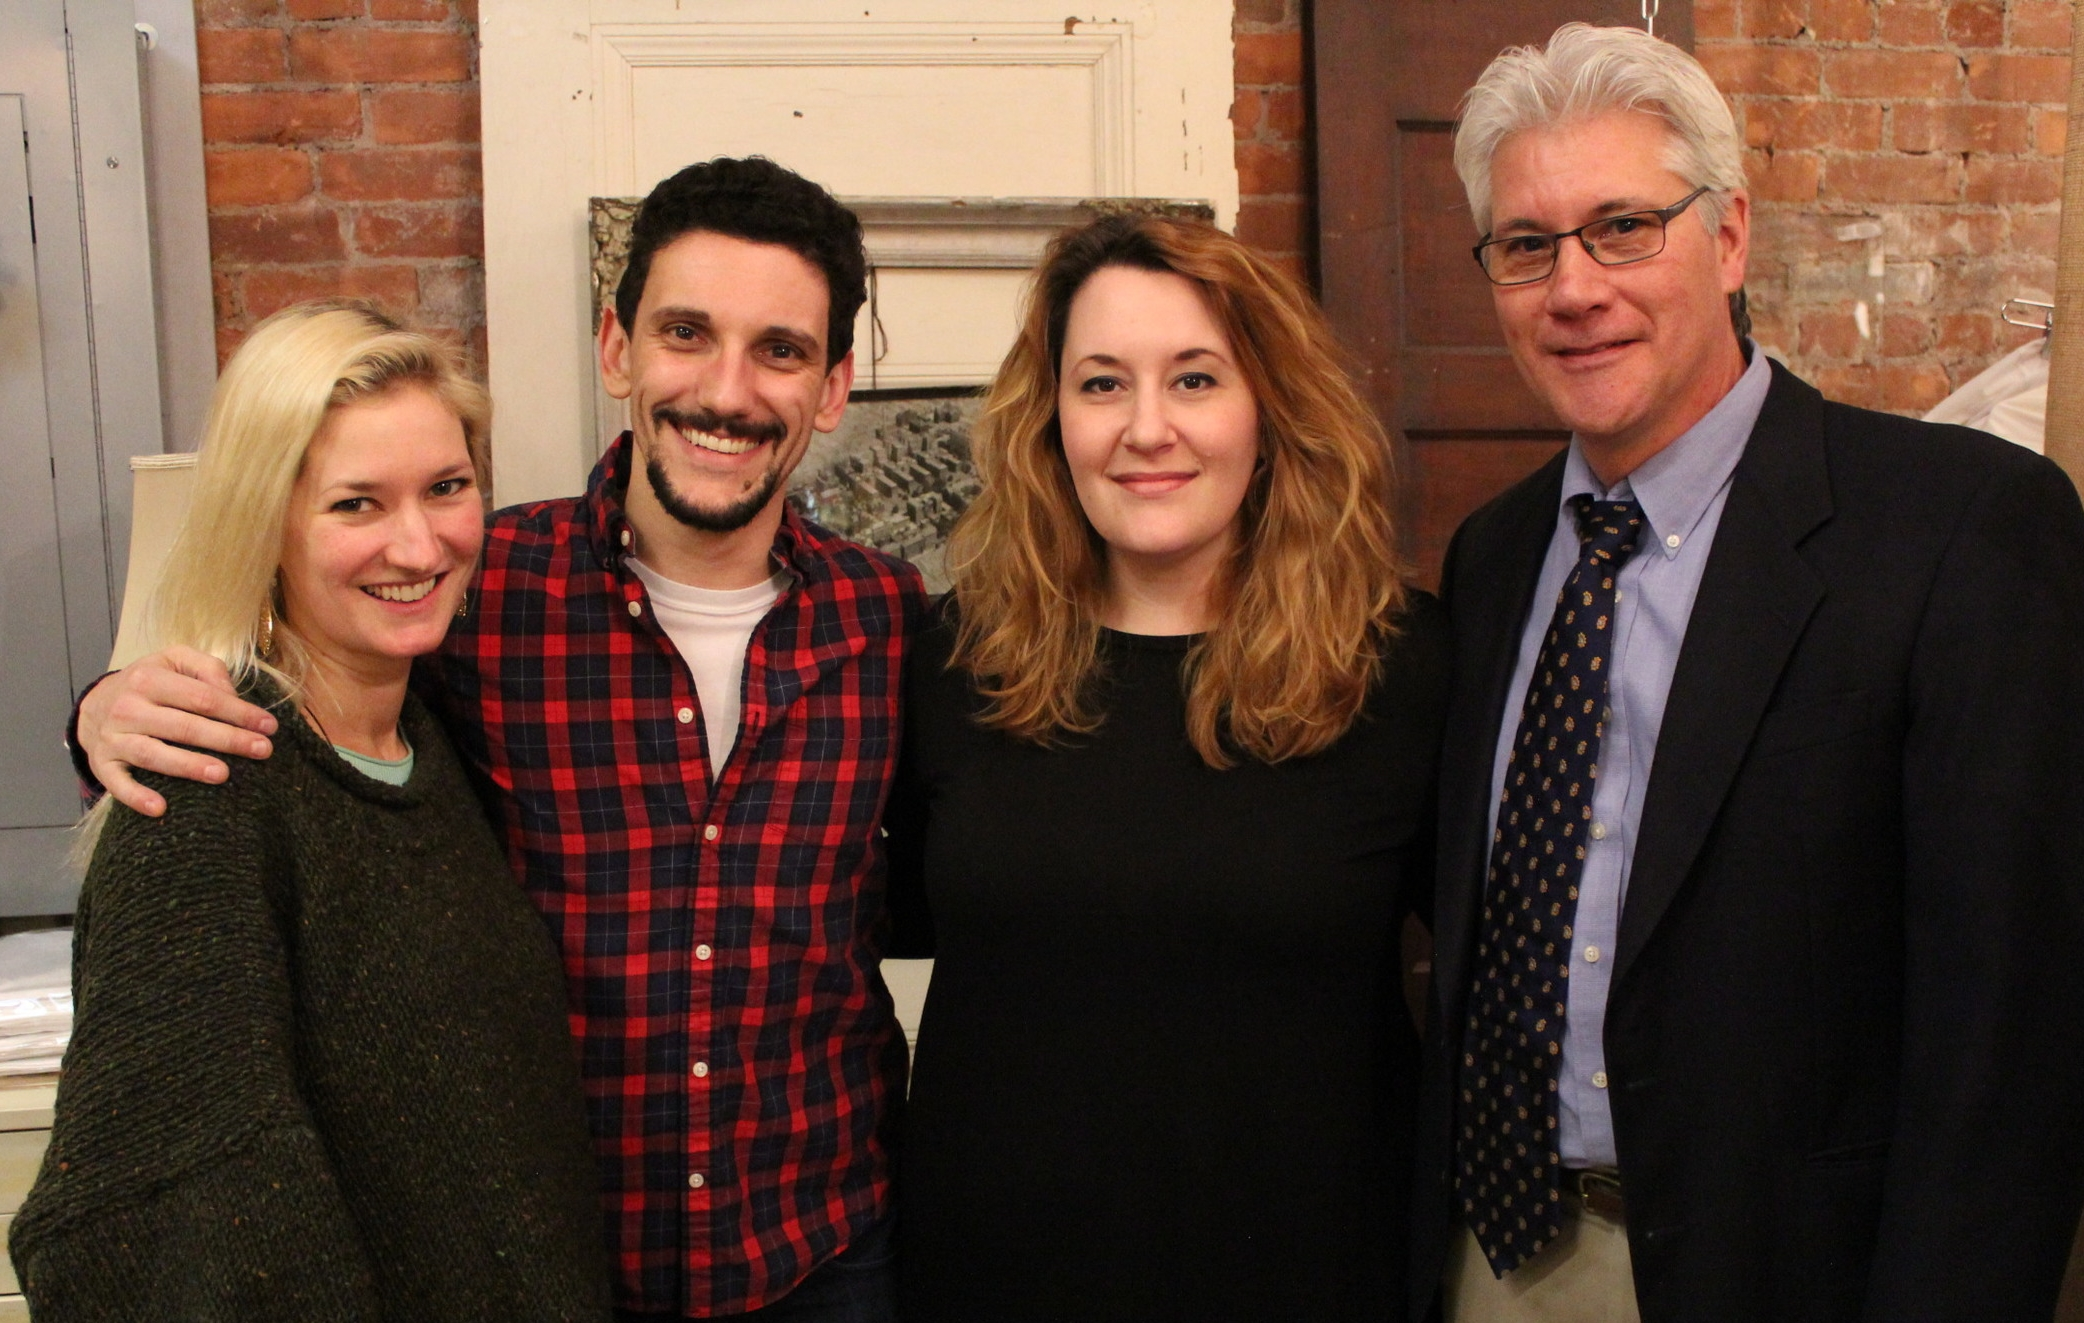 The cast of Proof: Megan Keith Chenot, Christian Shaboo, Deena Nicol-Blifford, George Kulp